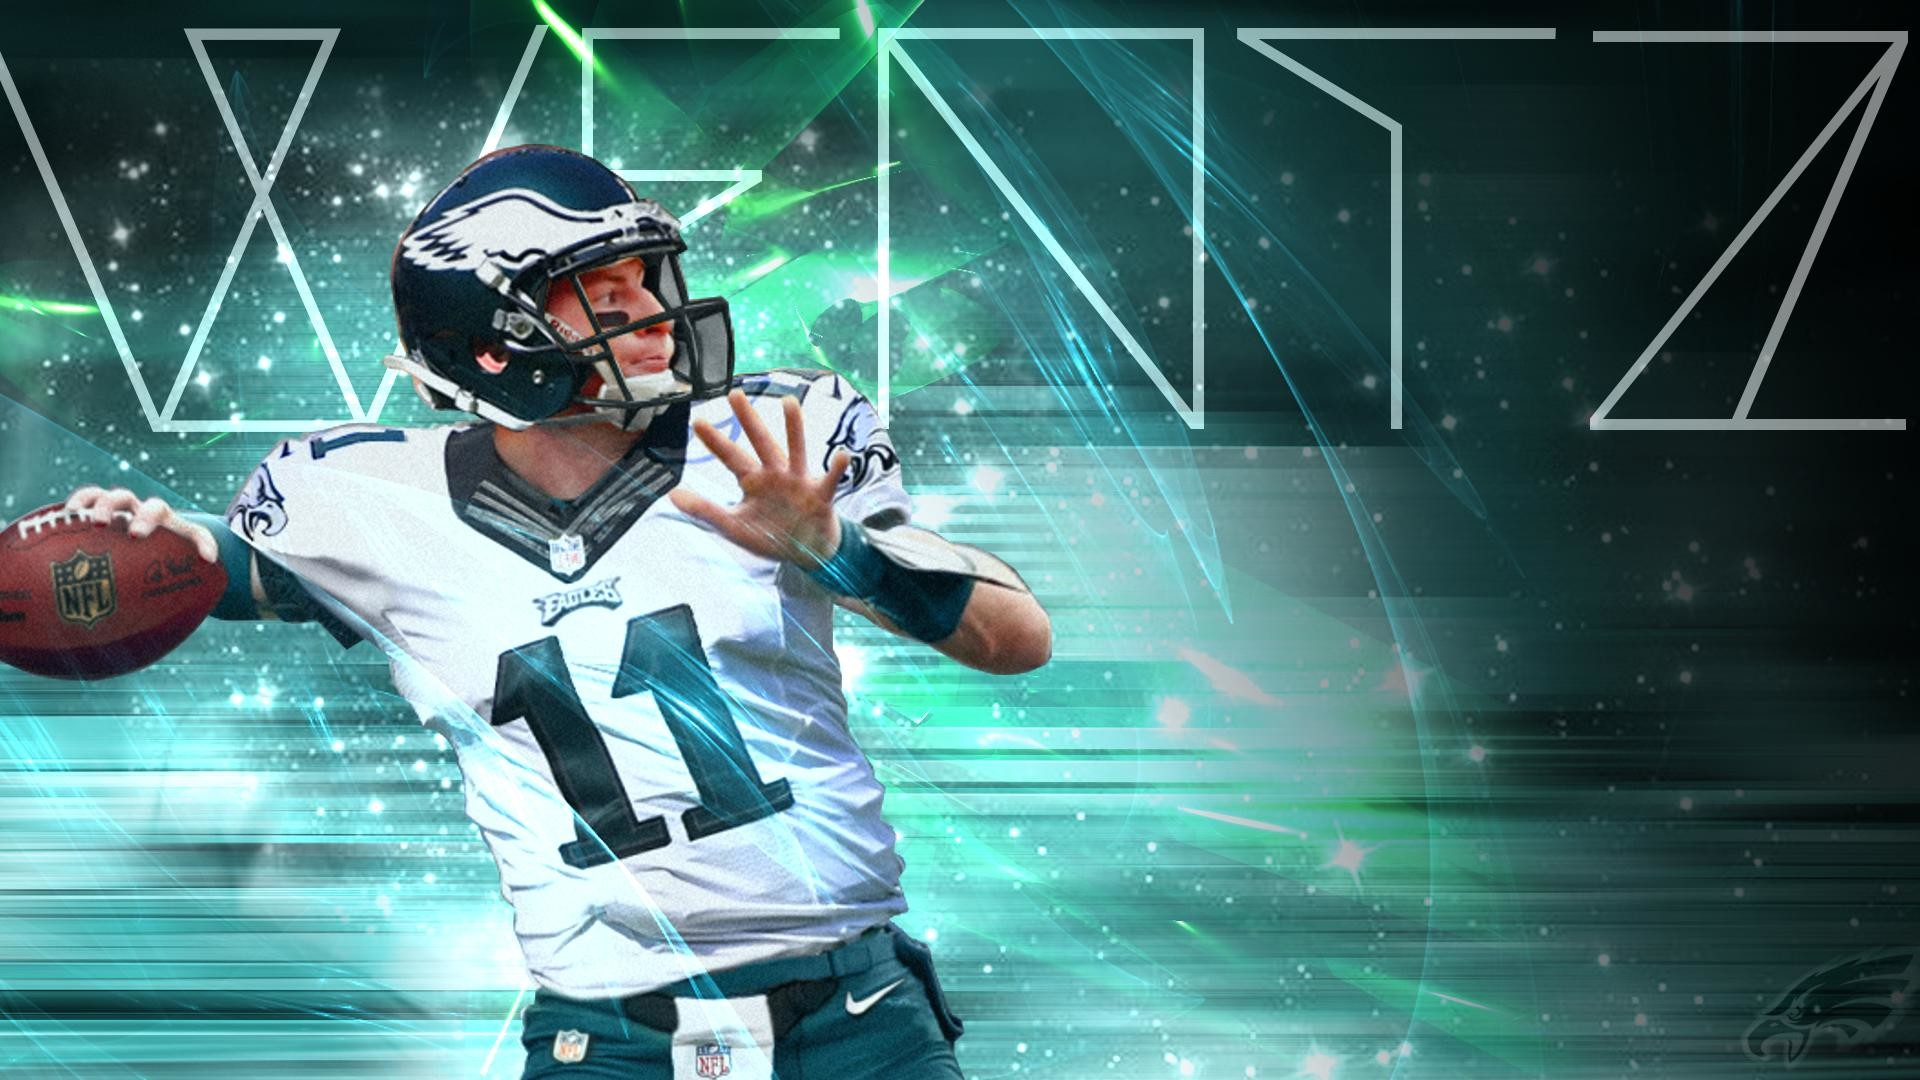 1920x1080 Carson Wentz Desktop Wallpaper () + Mobile Version in Comments ...